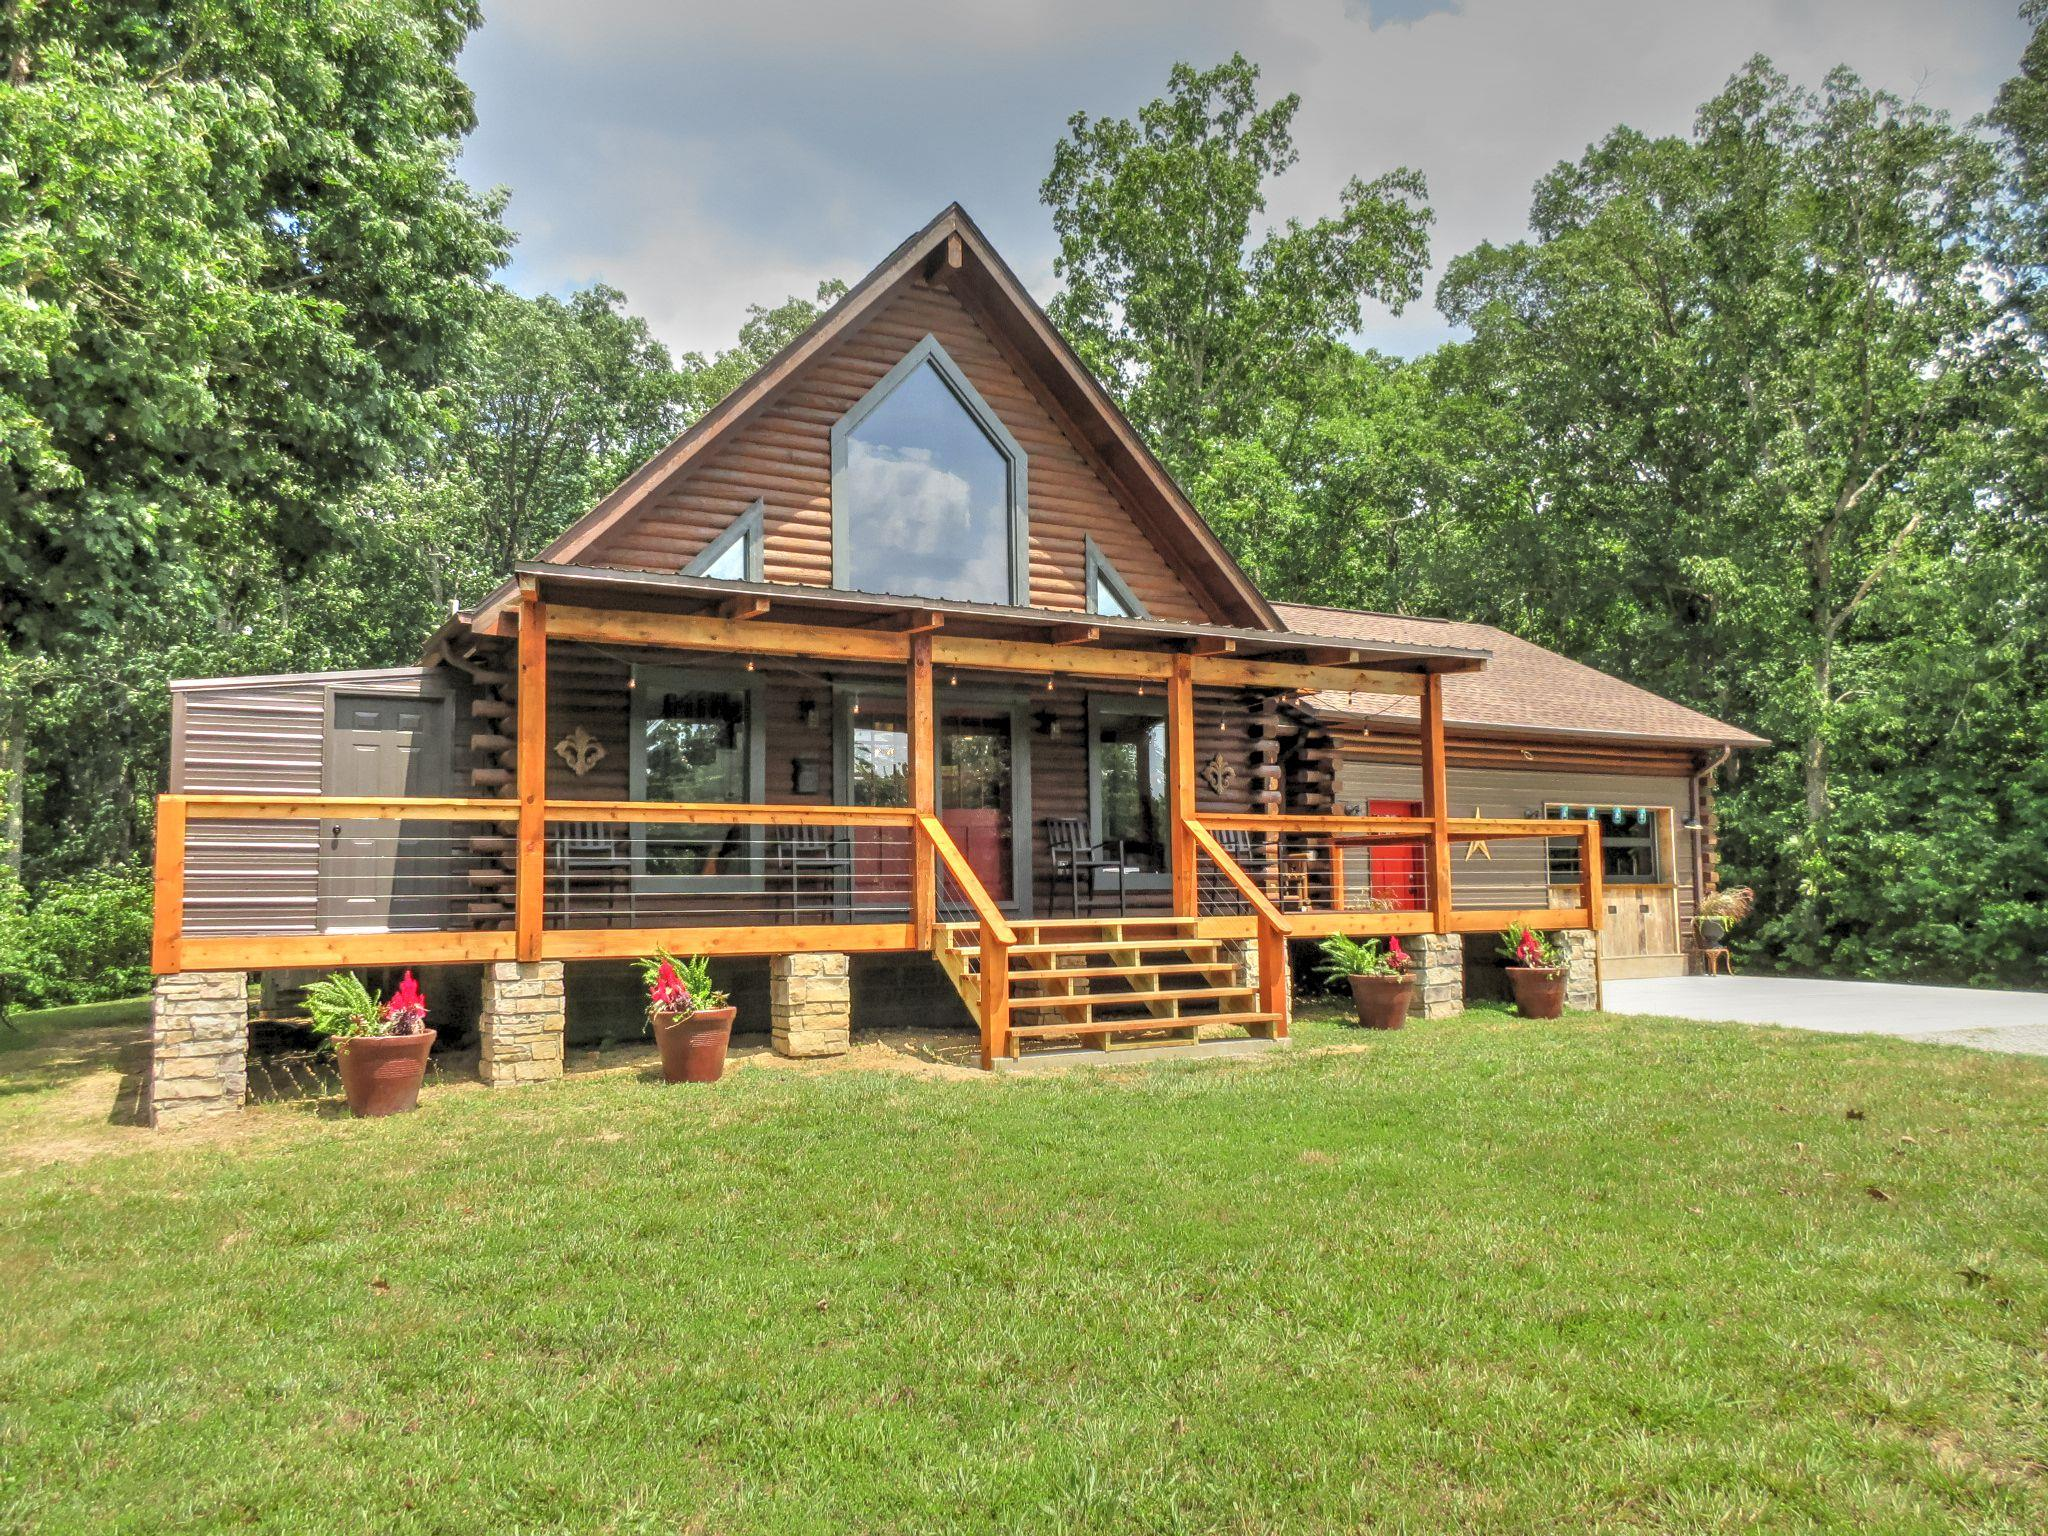 830 Rustic Valley Dr, Waverly, TN 37185 - Waverly, TN real estate listing